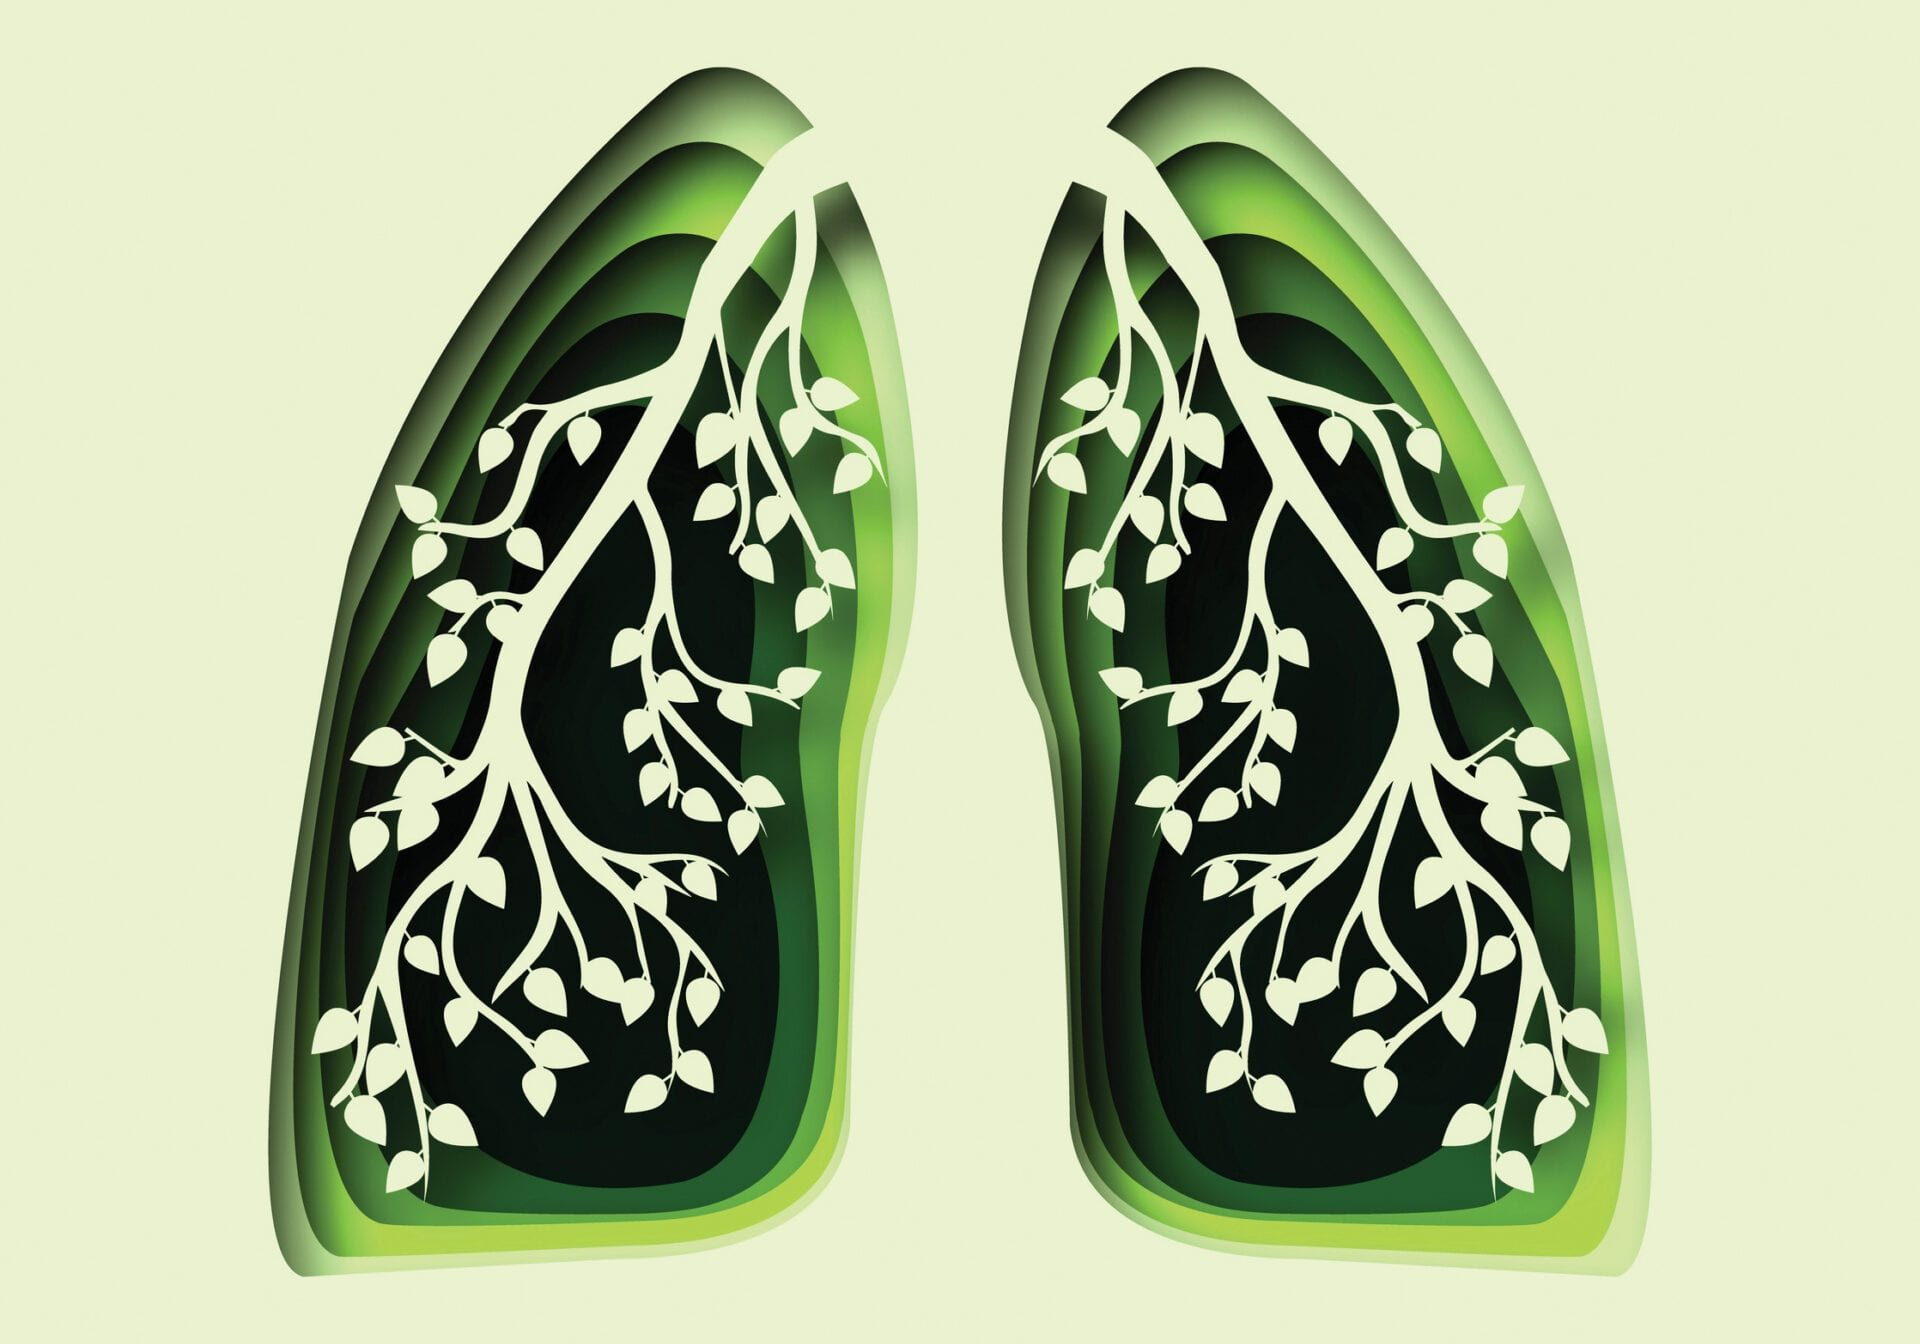 abstract 3d paper cut illustration of green human healthy lungs with branch and leaves. Vector template in paper art style. Lungs health concept.